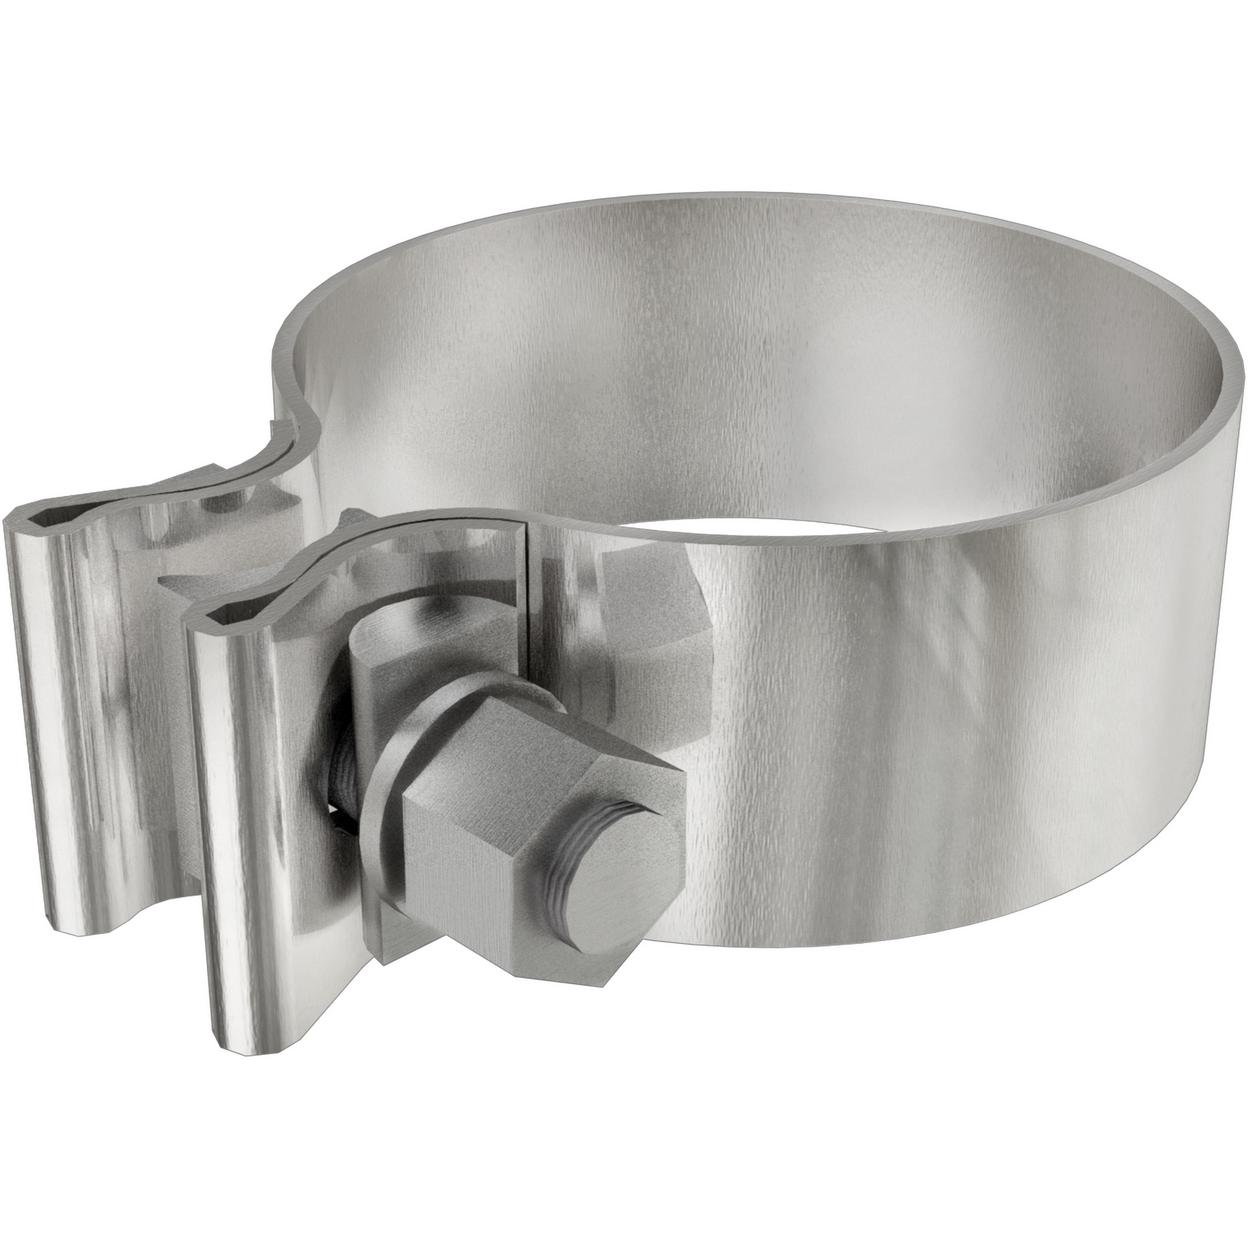 Lap Joint Band Clamp - 3.00in.